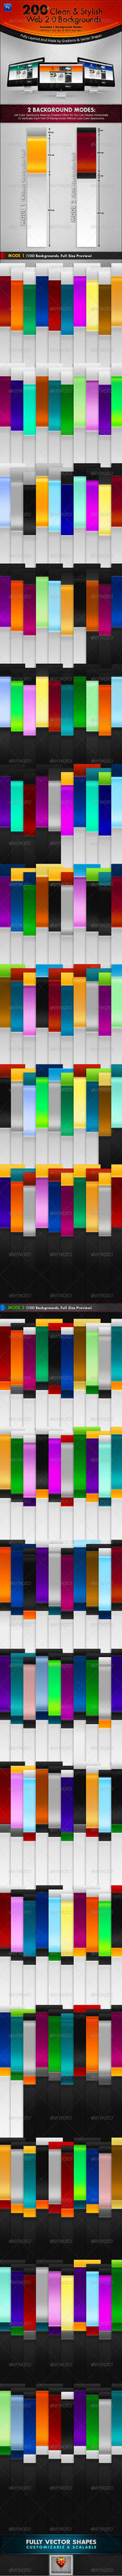 200 Clean and Stylish Web 2.0 Backgrounds by behzadblack